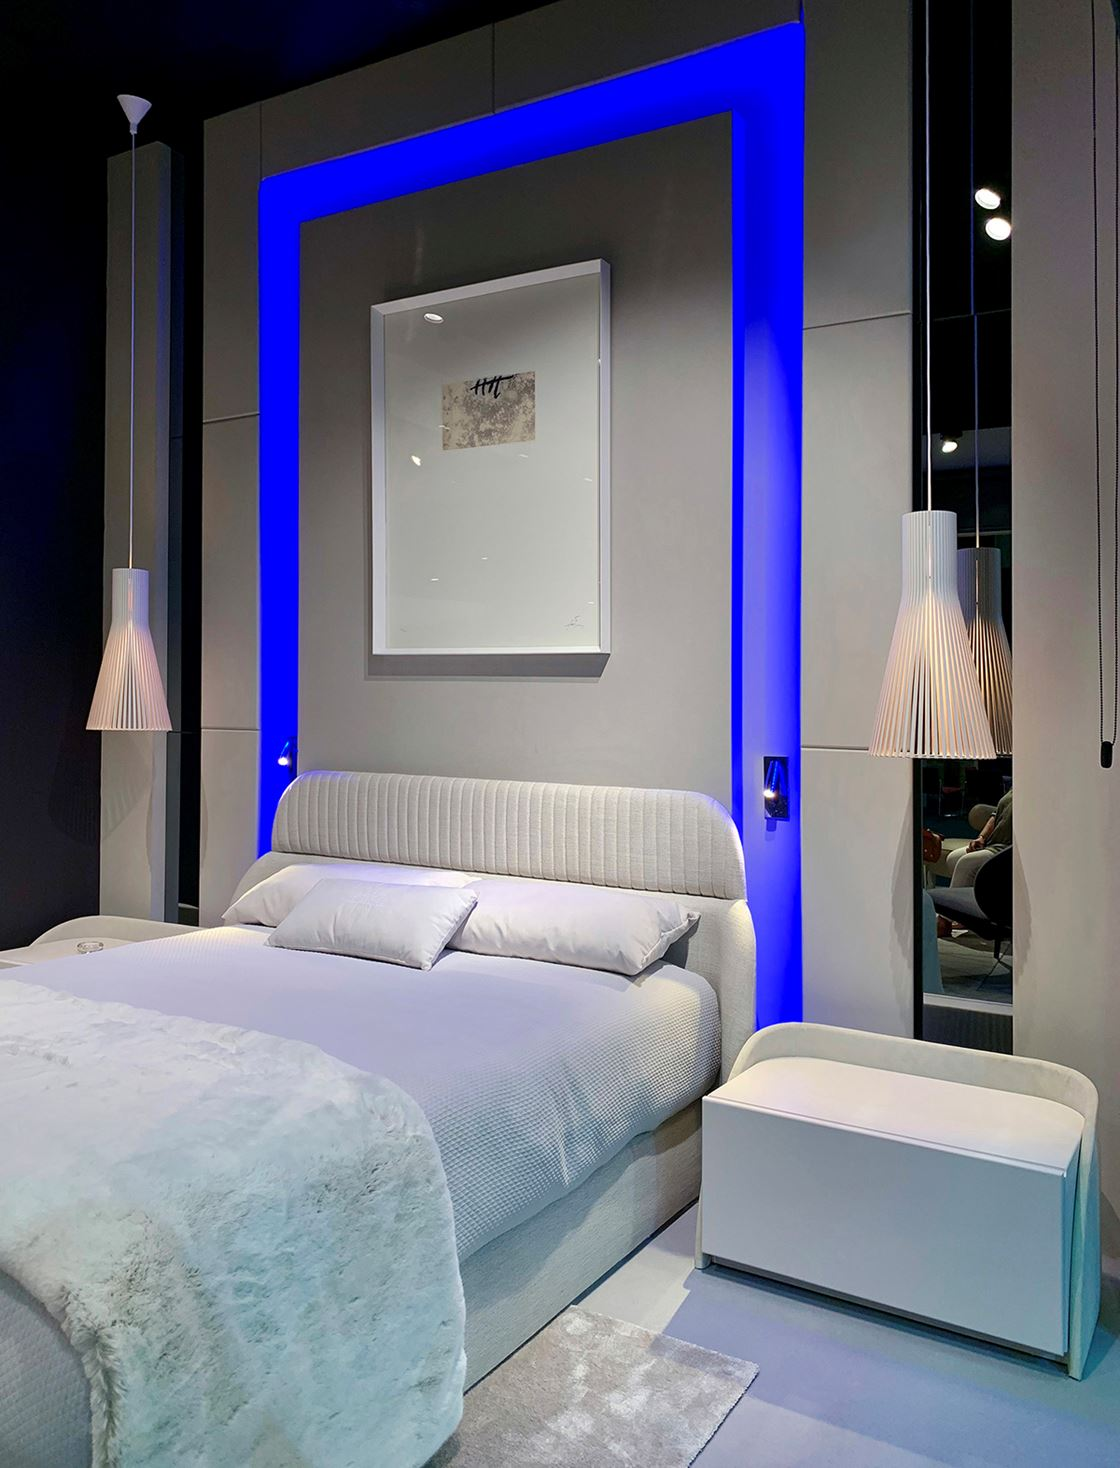 Cricket Bedroom Furniture Furniture From Spain